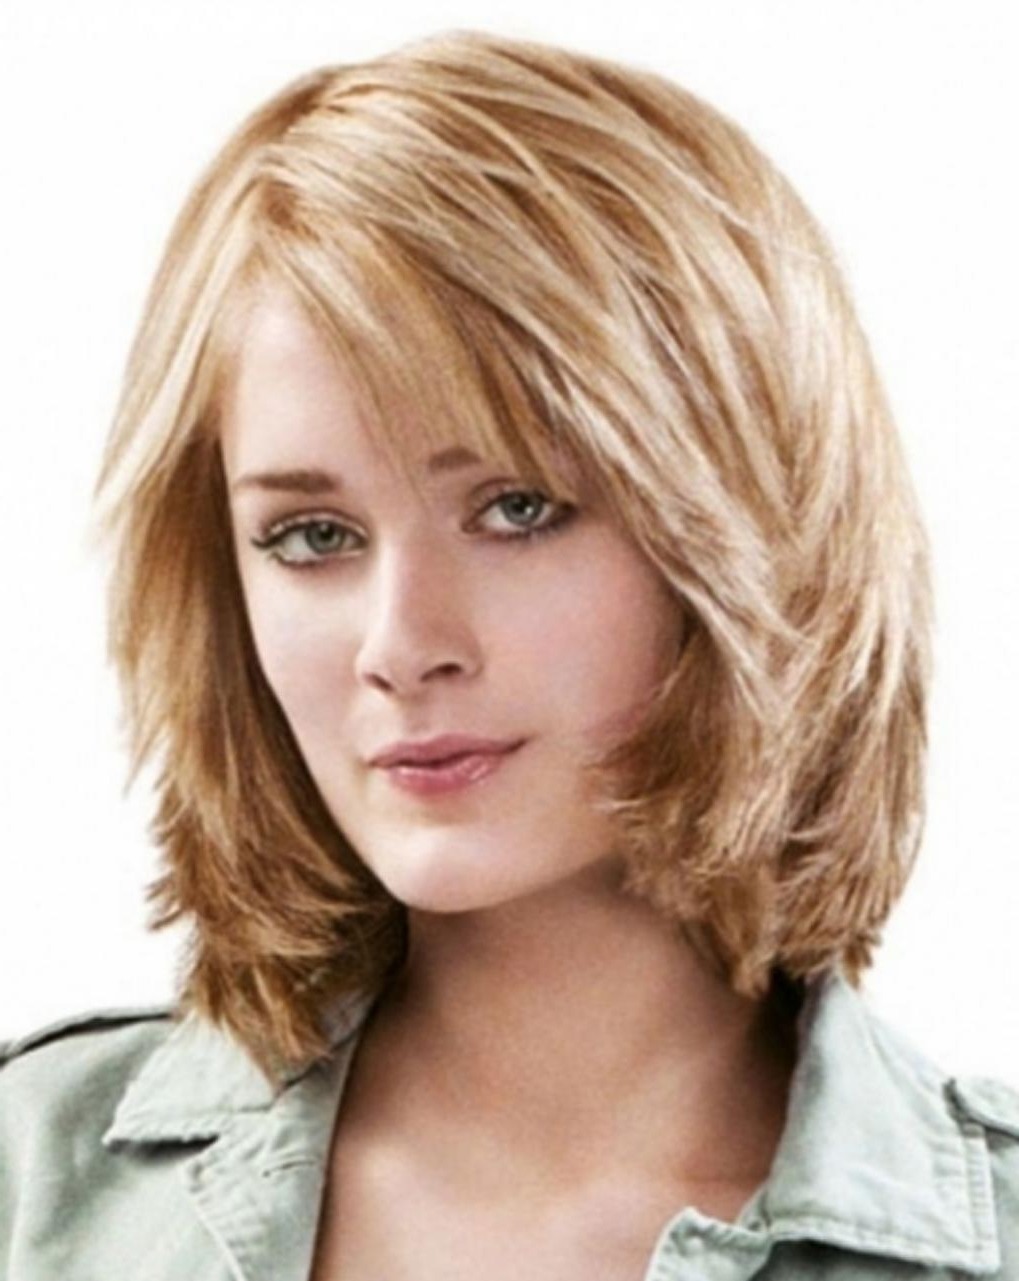 Women Hairstyle : Edgy Medium Length Haircuts For Thick Hair June In Most Up To Date Mid Length Haircuts With Curled Layers (View 20 of 20)